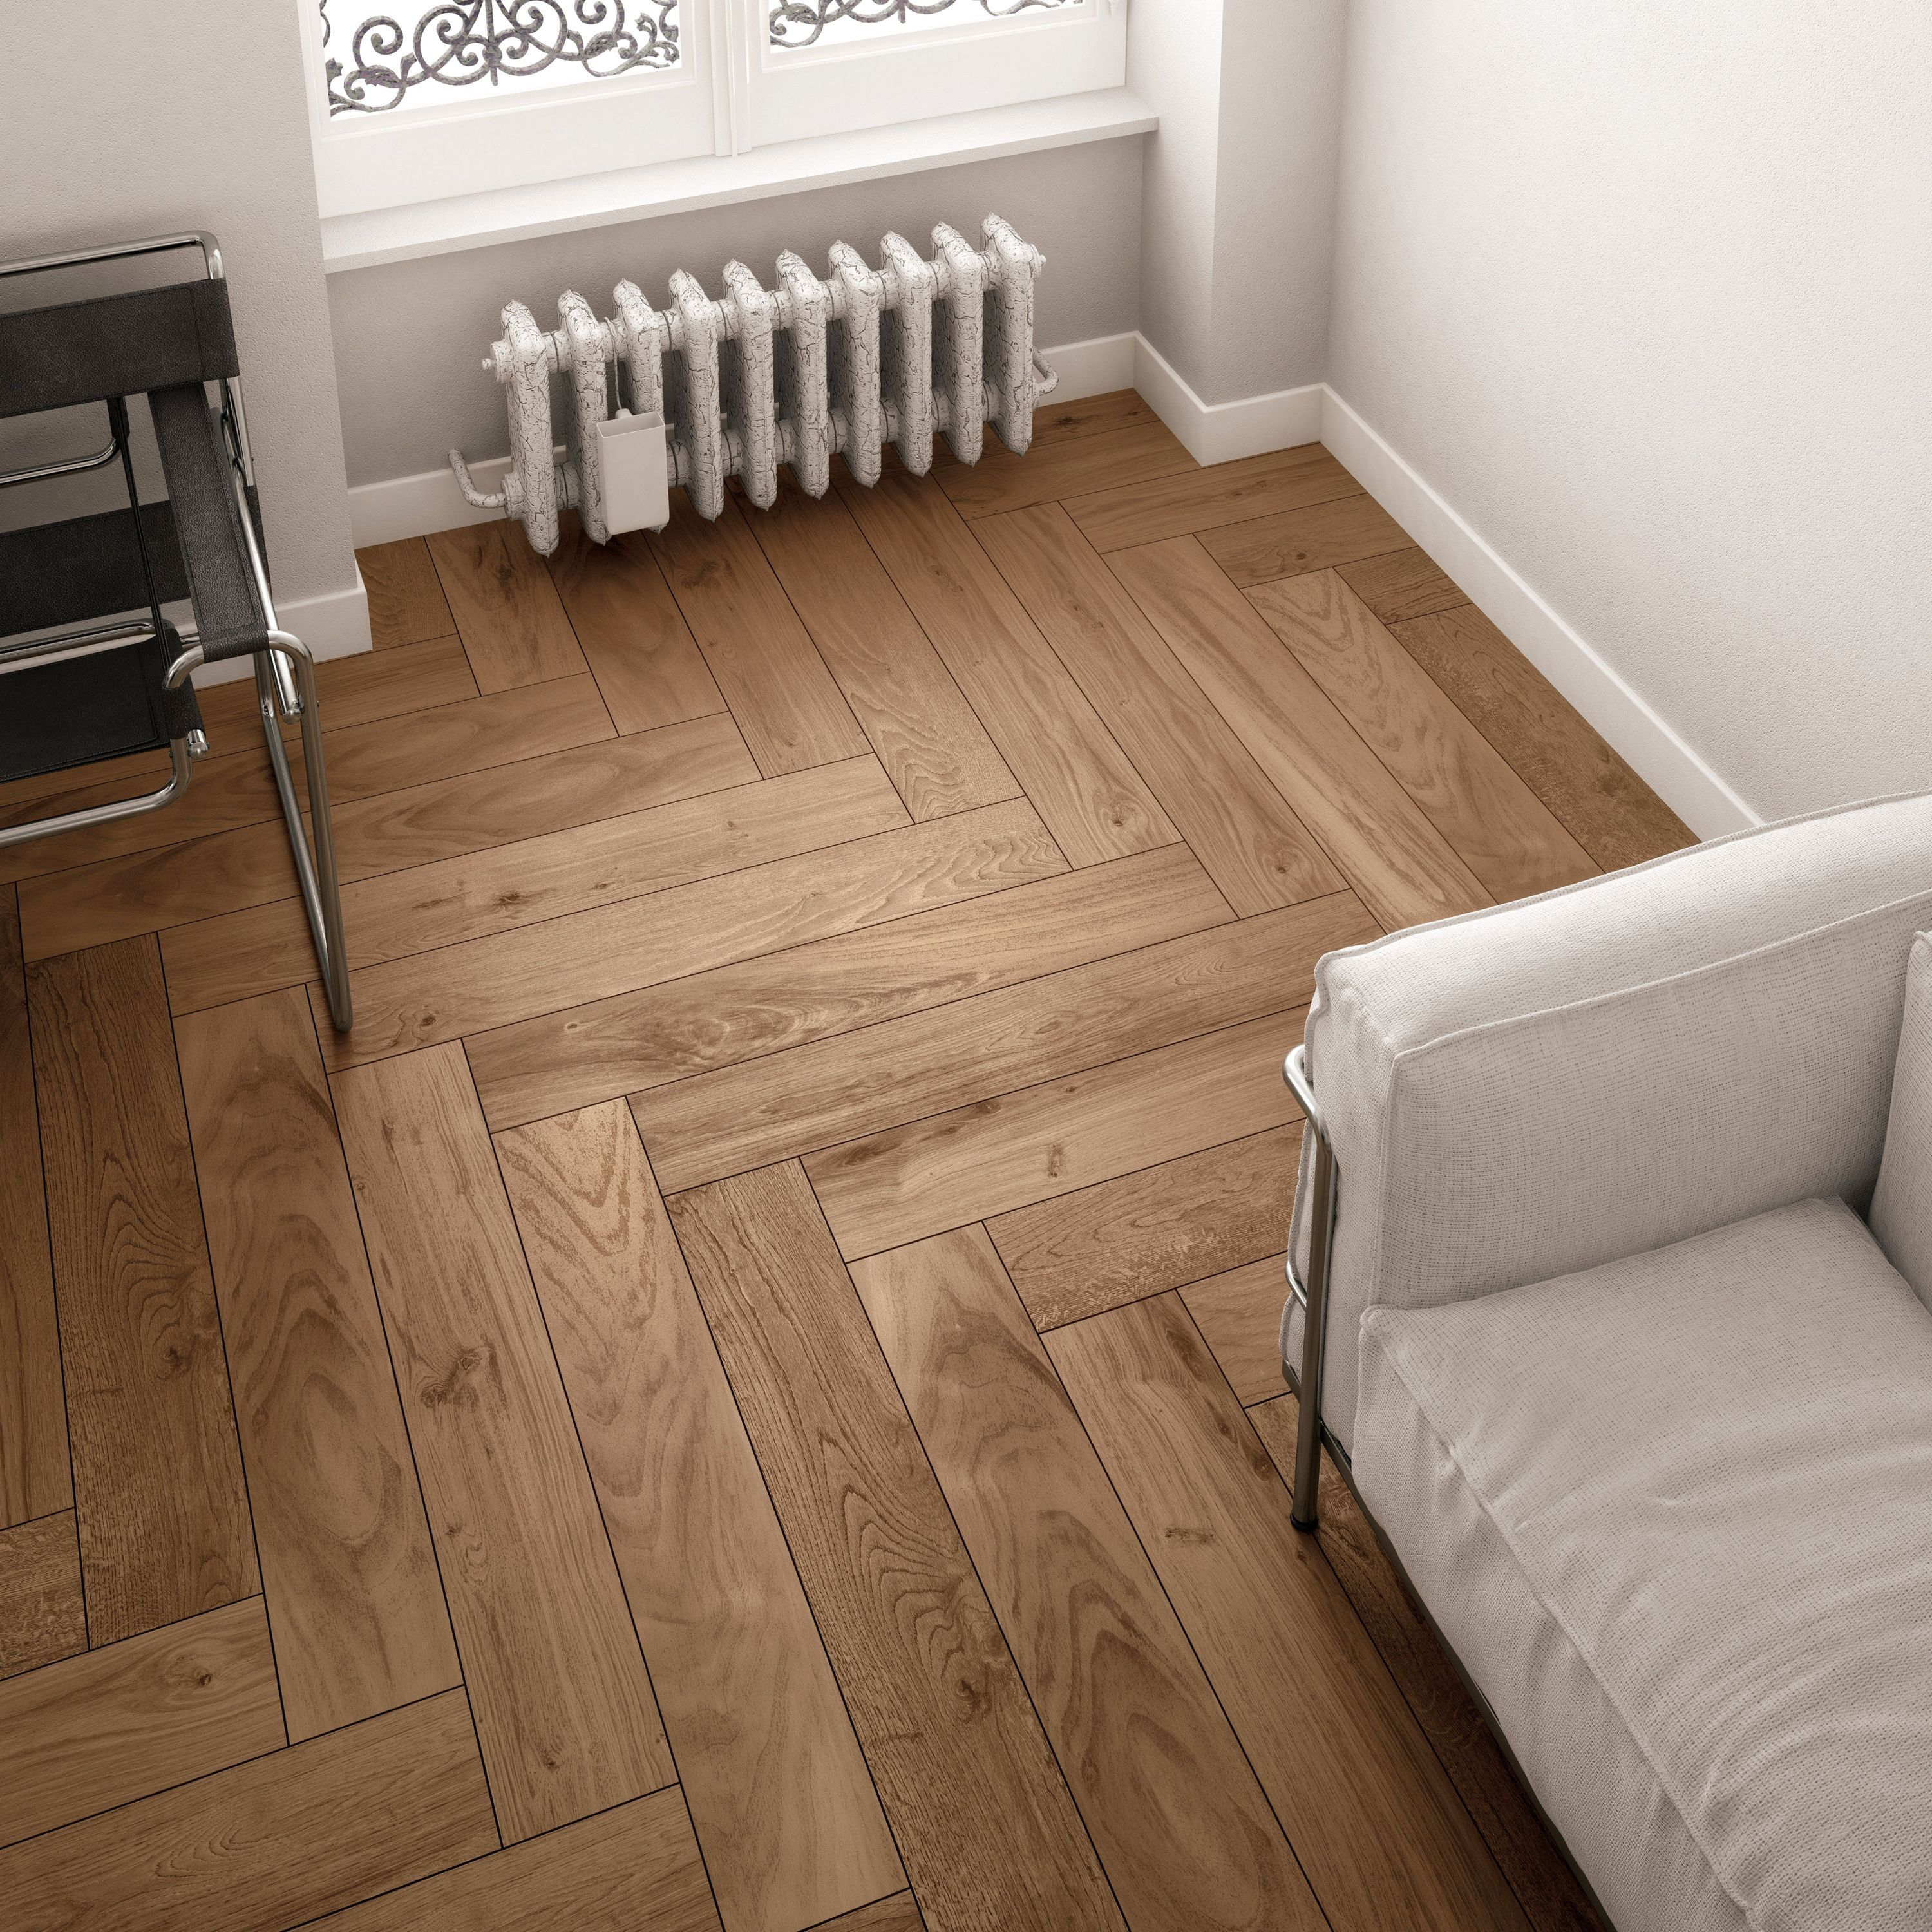 Herringbone Wood Floor Chevron Pattern DECOREDO